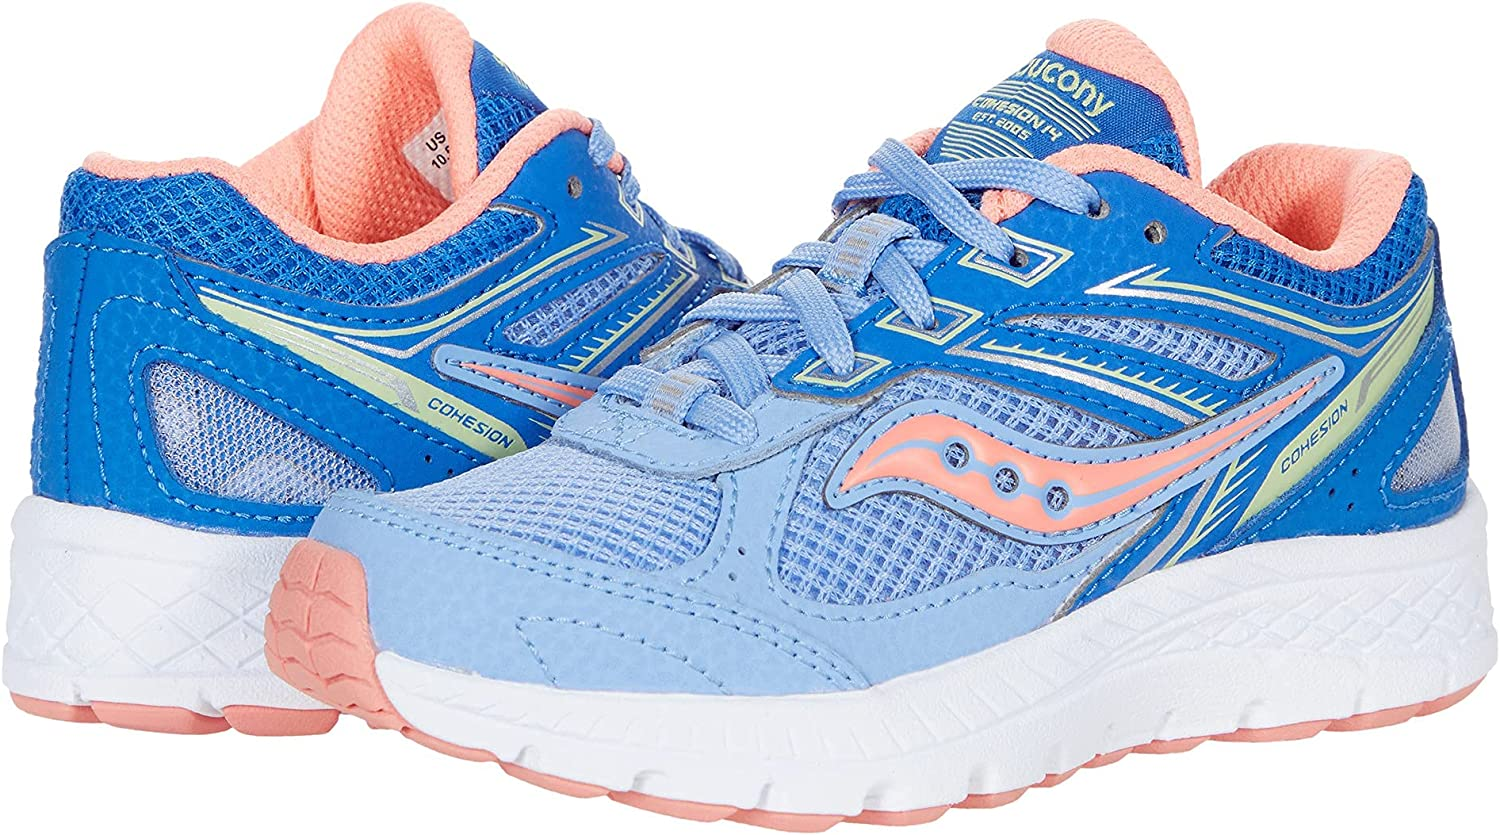 Saucony Cohesion 14 LACE to Toe Running Shoe, Blue/Coral, 3 Wide US Unisex Big_Kid